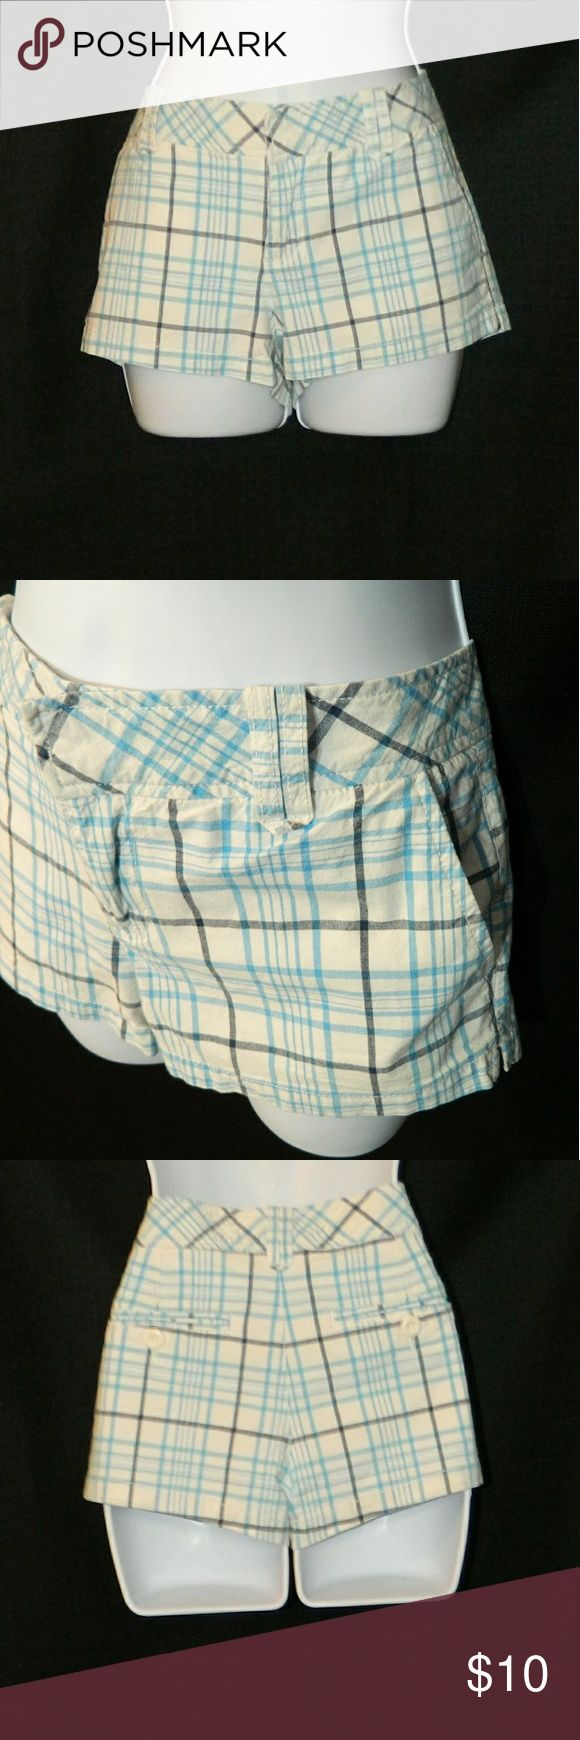 AEROPOSTALE White & blue plaid shorts Perfect for the beach, just grab your bikini top & flip flops! Light blue & navy blue plaid. Very slight stretch. Cotton & spandex. 4 pockets. 2 hook and zipper closure. Size Juniors 7/8. In very good comdition.           Approximate Measurements: Total length waist to hem  = 9 in; Inseam = 2 in; Half waist = 16 1/2 in. Aeropostale Shorts